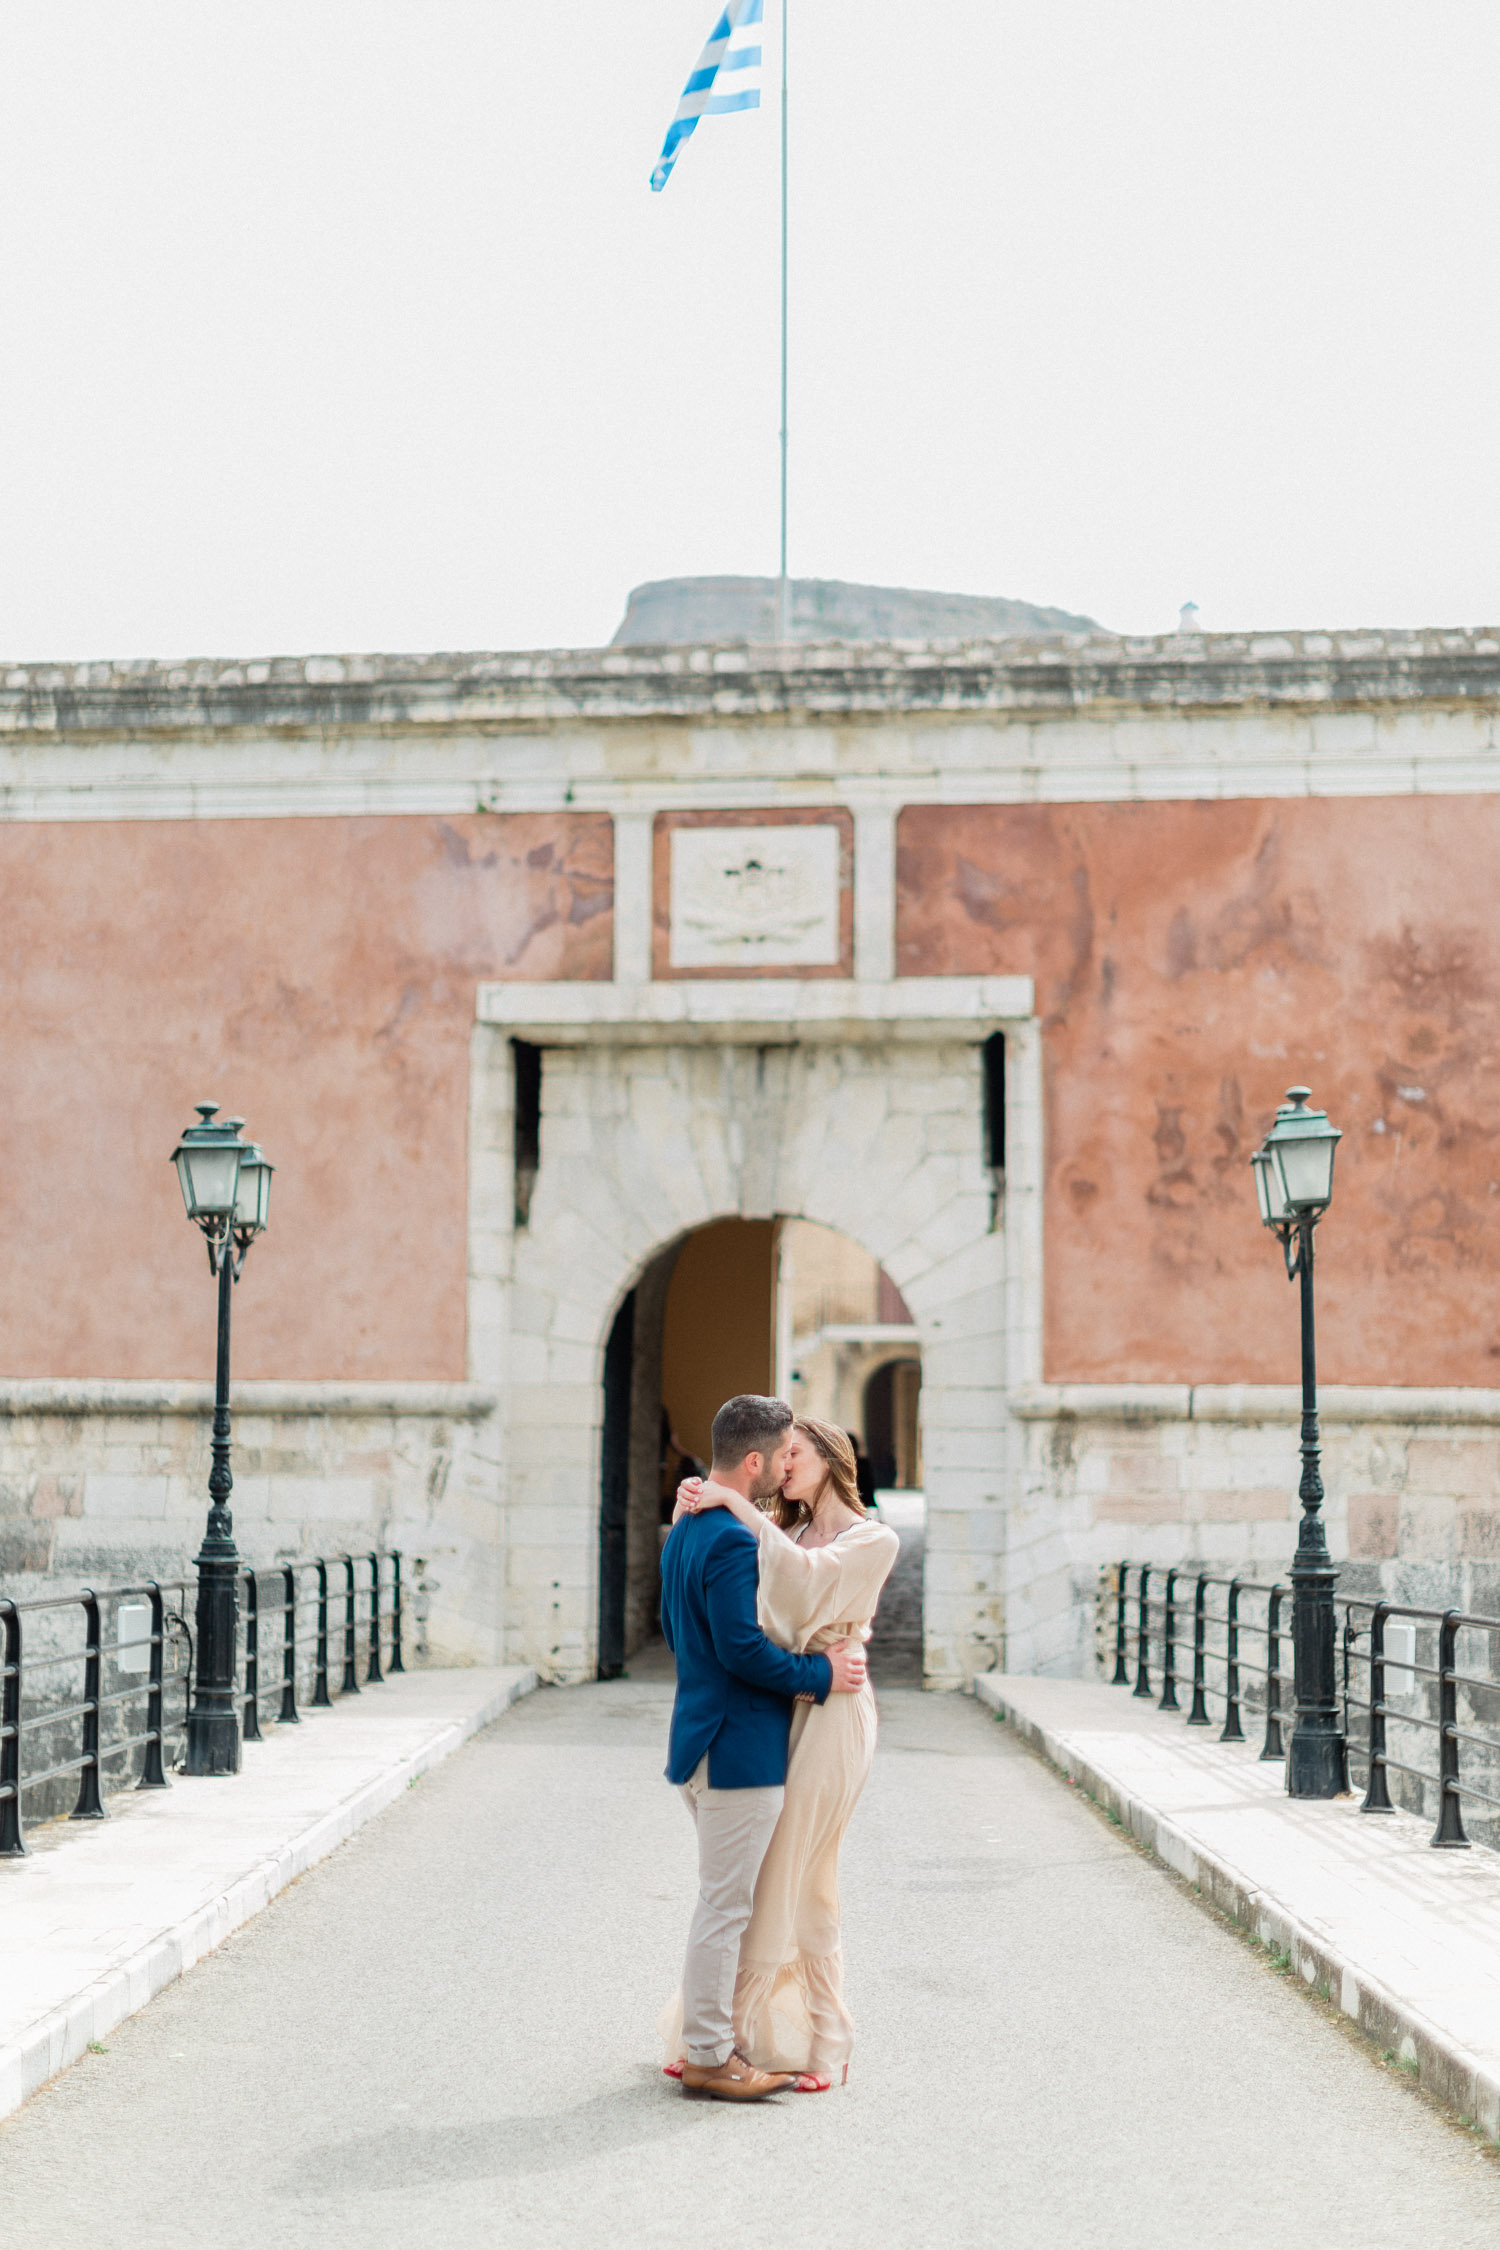 couple portrait while engagement shooting at Corfu old town, Greece